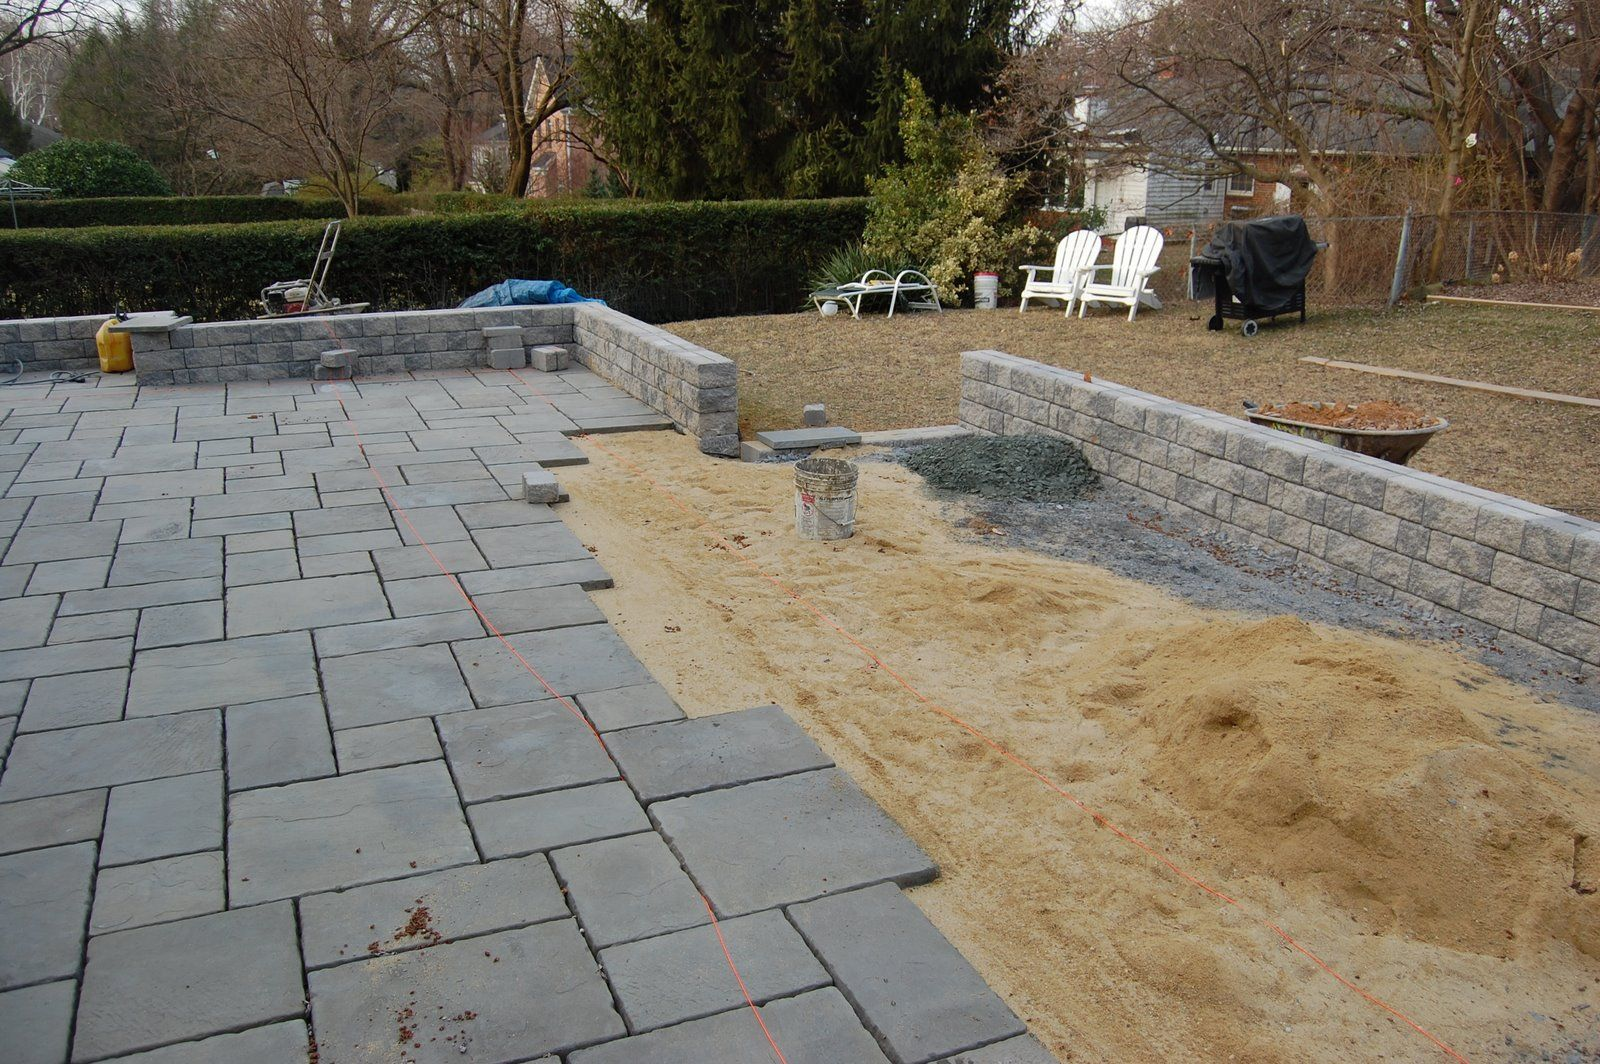 natural stone il bluestone and evanston border range fire pavers project patio brick paver reclaimed path barr pit cleft full walk